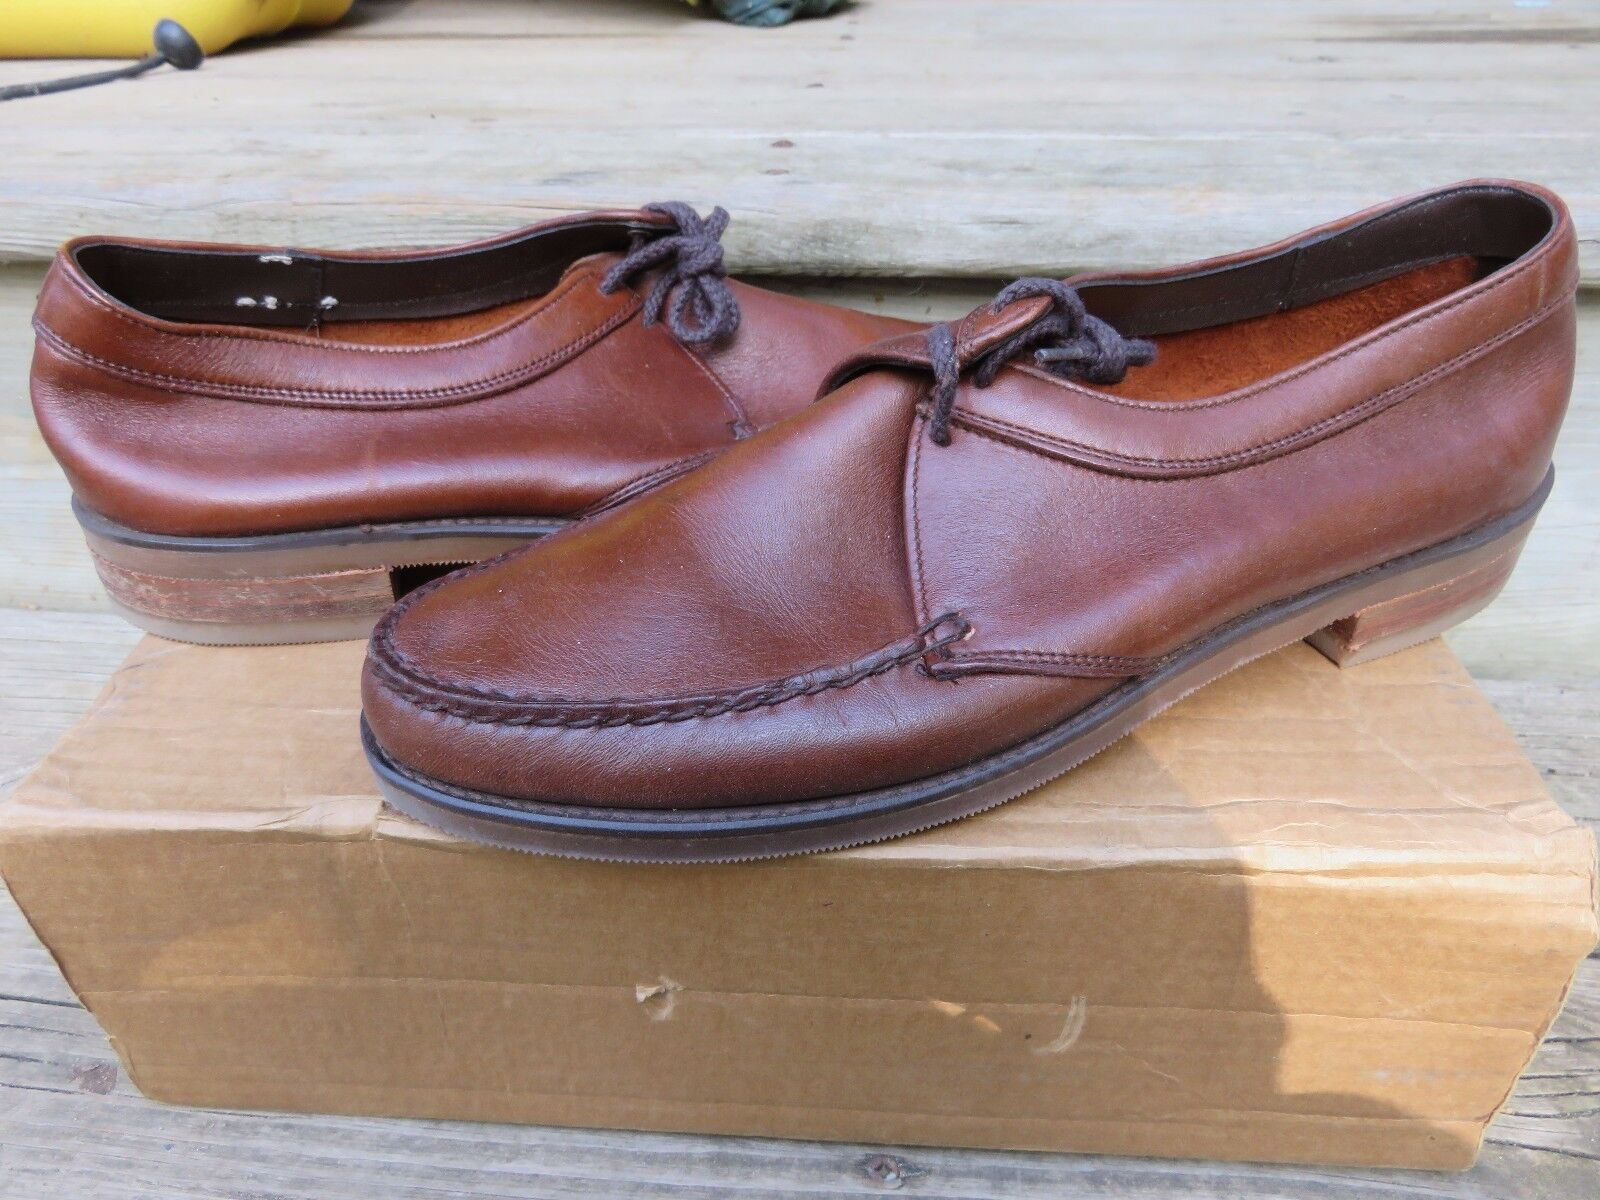 vendita outlet online NEW NEW NEW Stuart Mcguire BRWN Loafer Dress scarpe Sz 4100 New Old Stock Leather  offerta speciale